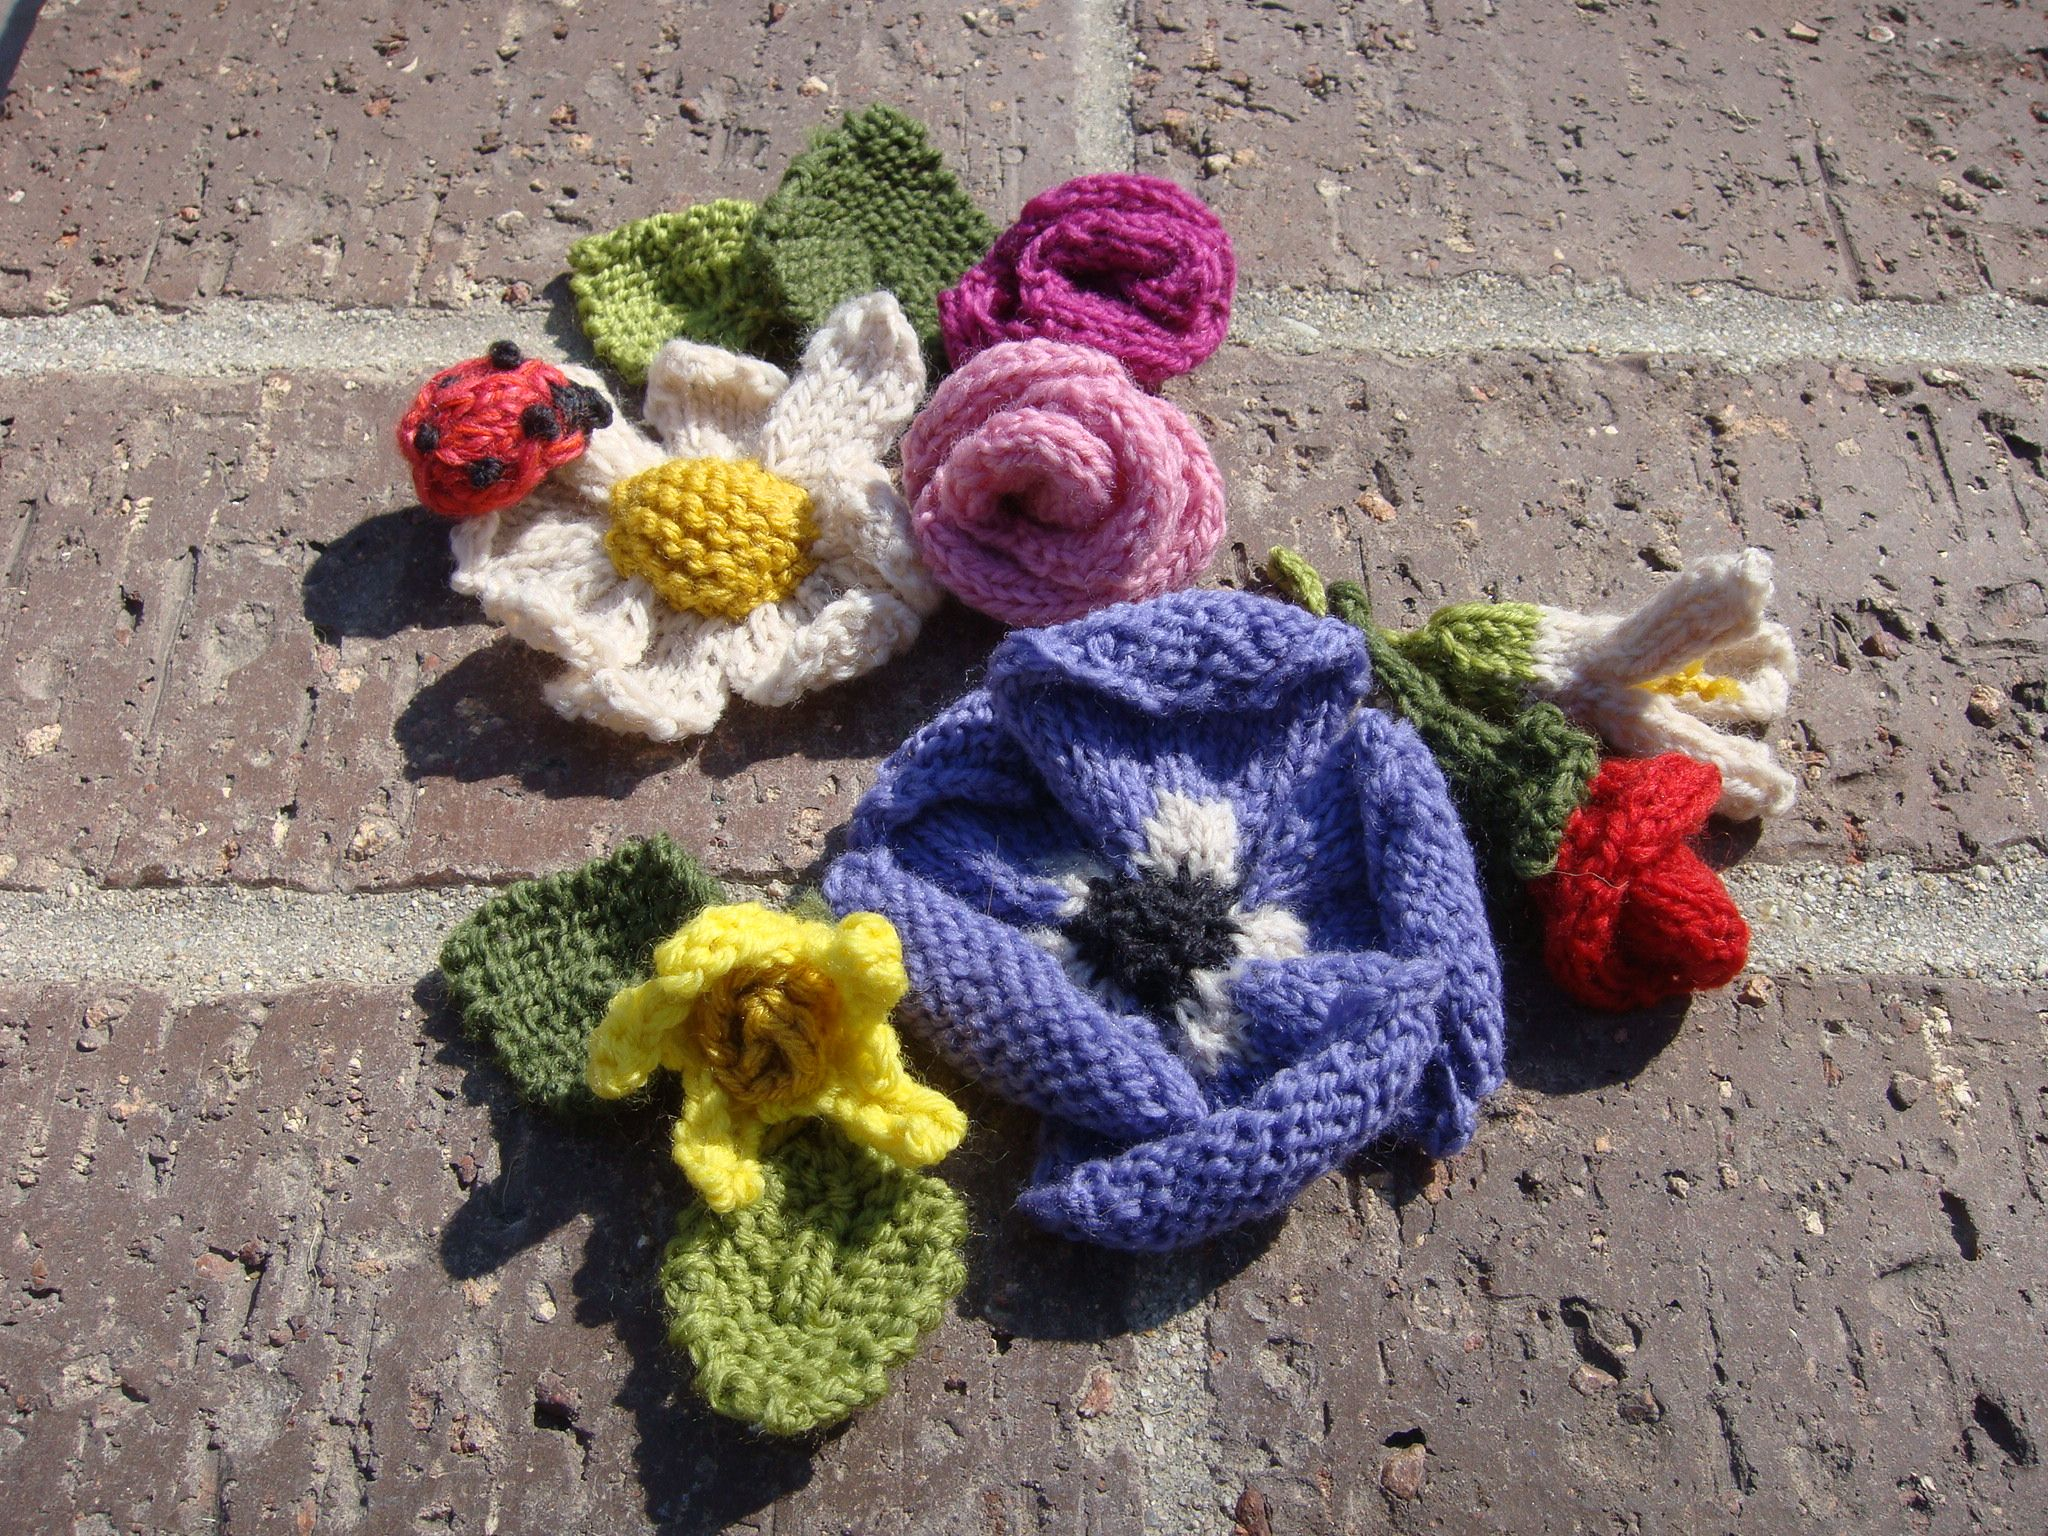 "I found an amazing knitting book by Lesley Stanfield! Thom saw me knitting day & night, said ""What RU going to do w/ that?"" Well I had no idea then Keiko called me one day & told me she needed donation item for 3/11 Japan disaster fundraising event. I knitted 30 mini rose butts for wrapping decorations."